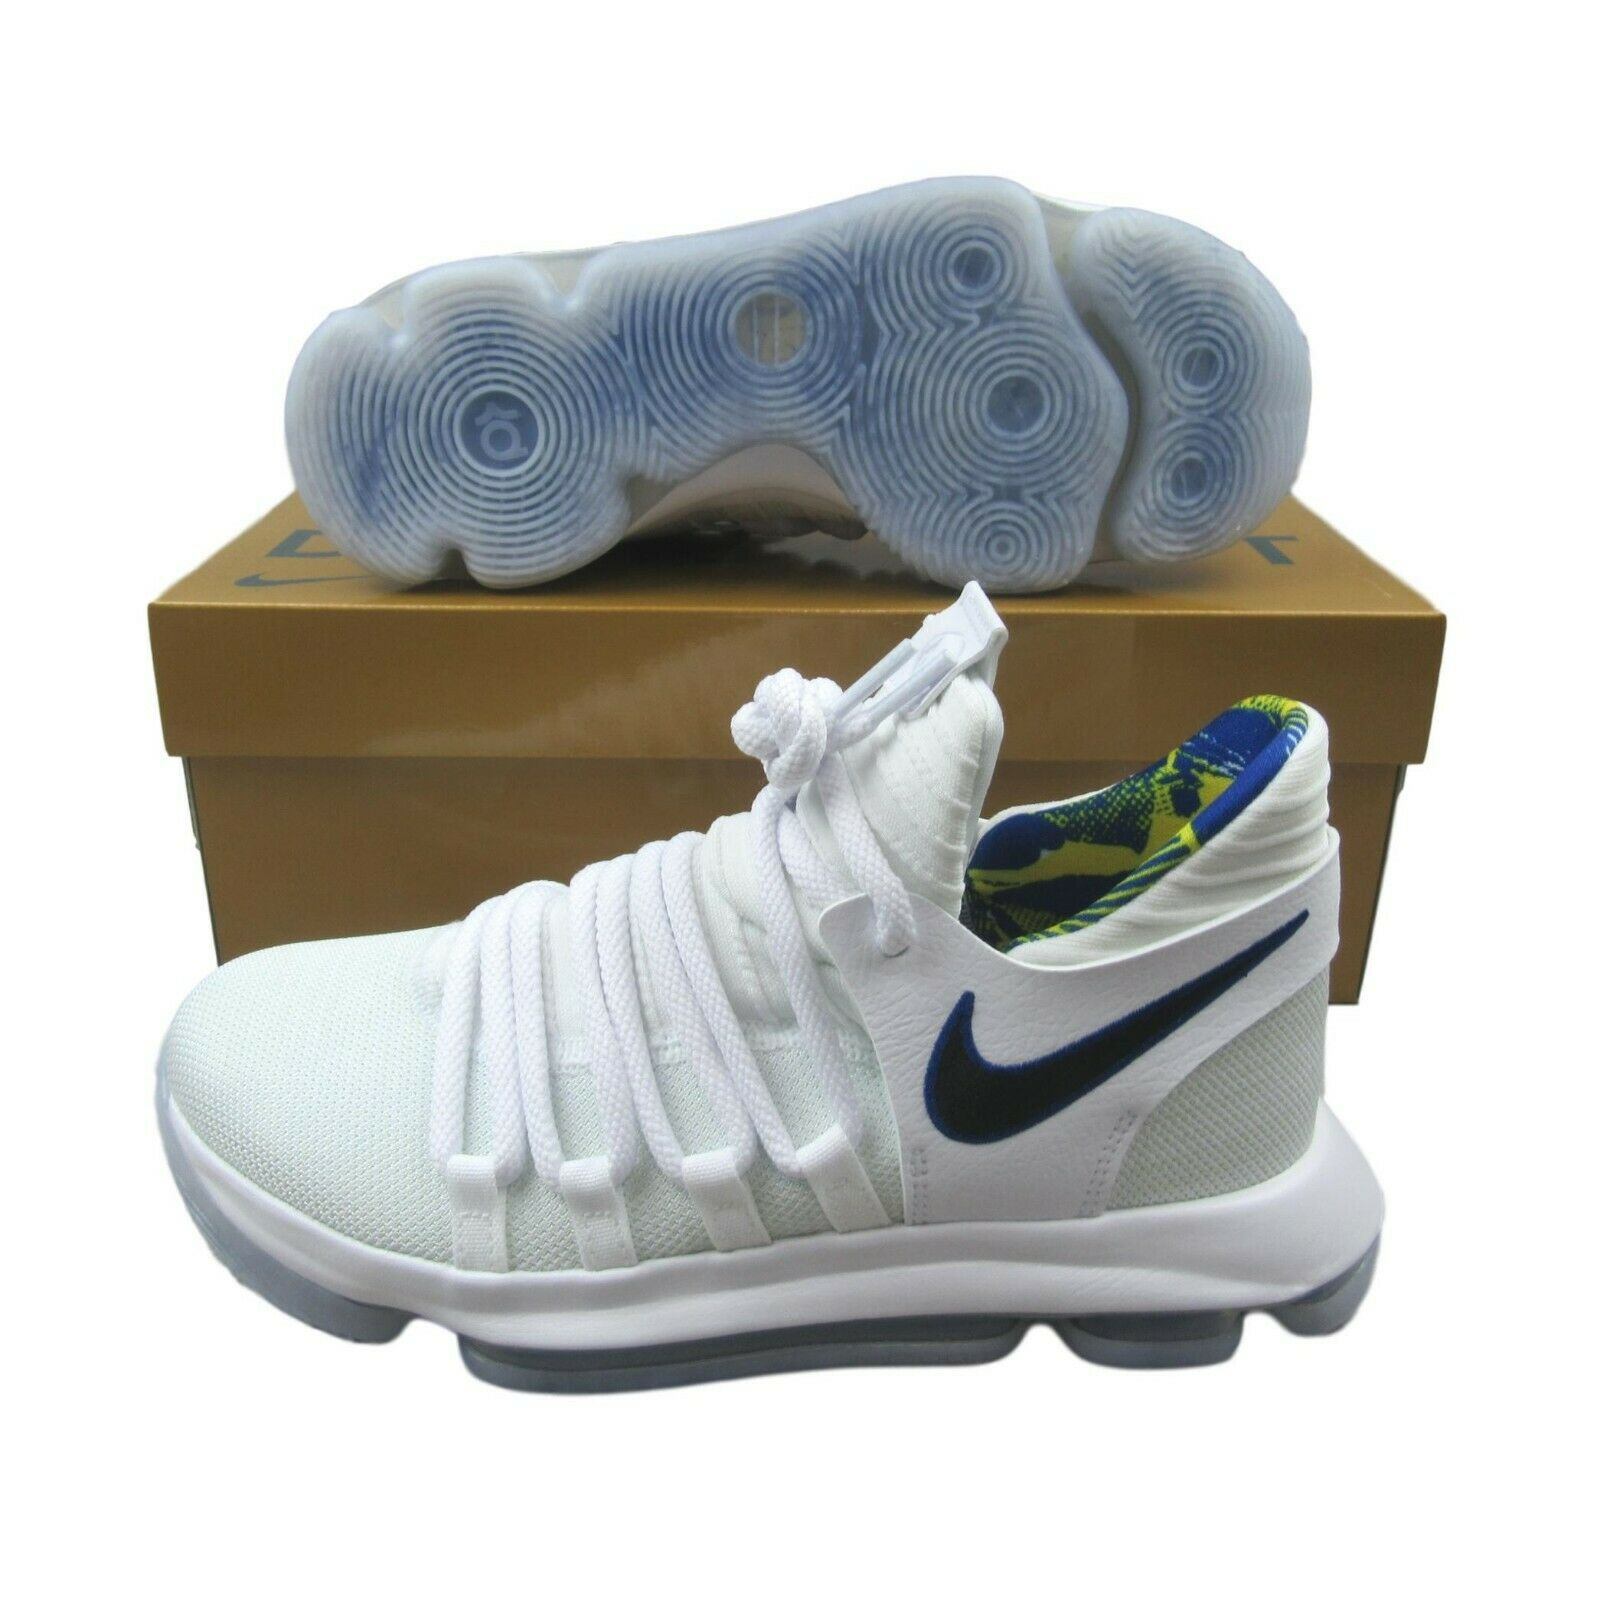 400970b8ec59 Nike Zoom KD 10 Limited Golden State Warriors Shoes White Size 6Y ...